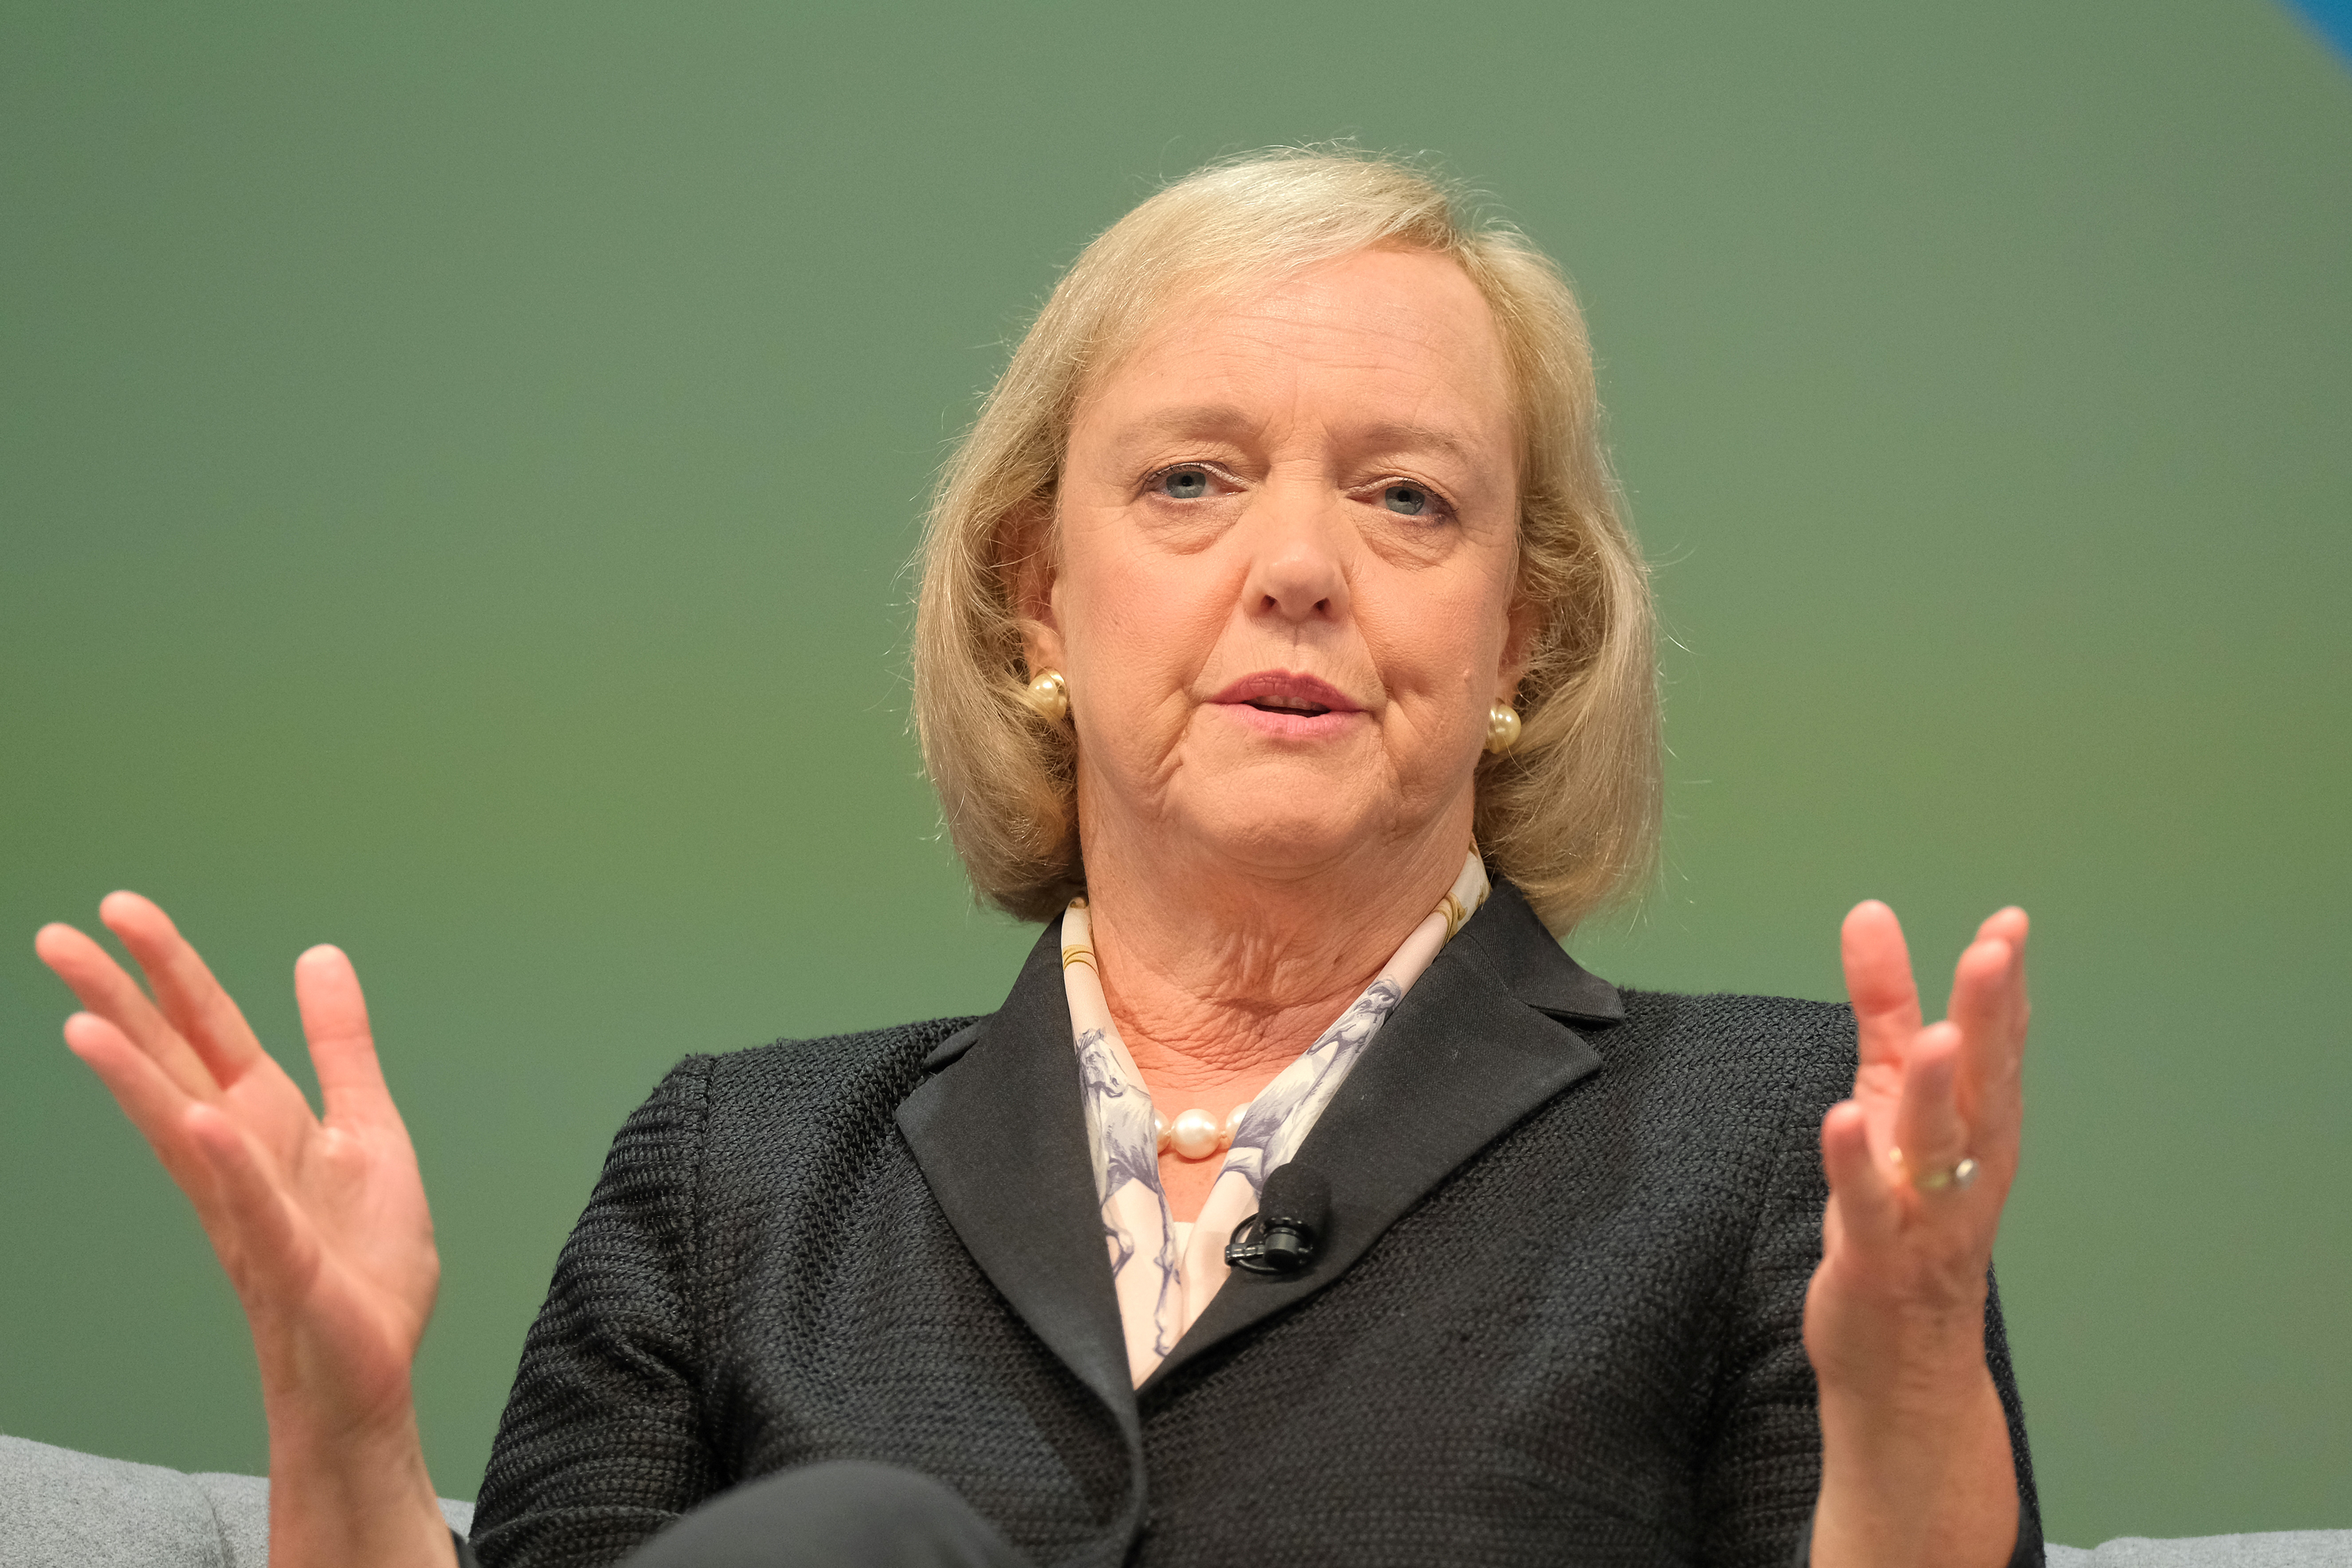 Meg Whitman brings big ad deals to Quibi, but isn't caving to all advertiser demands